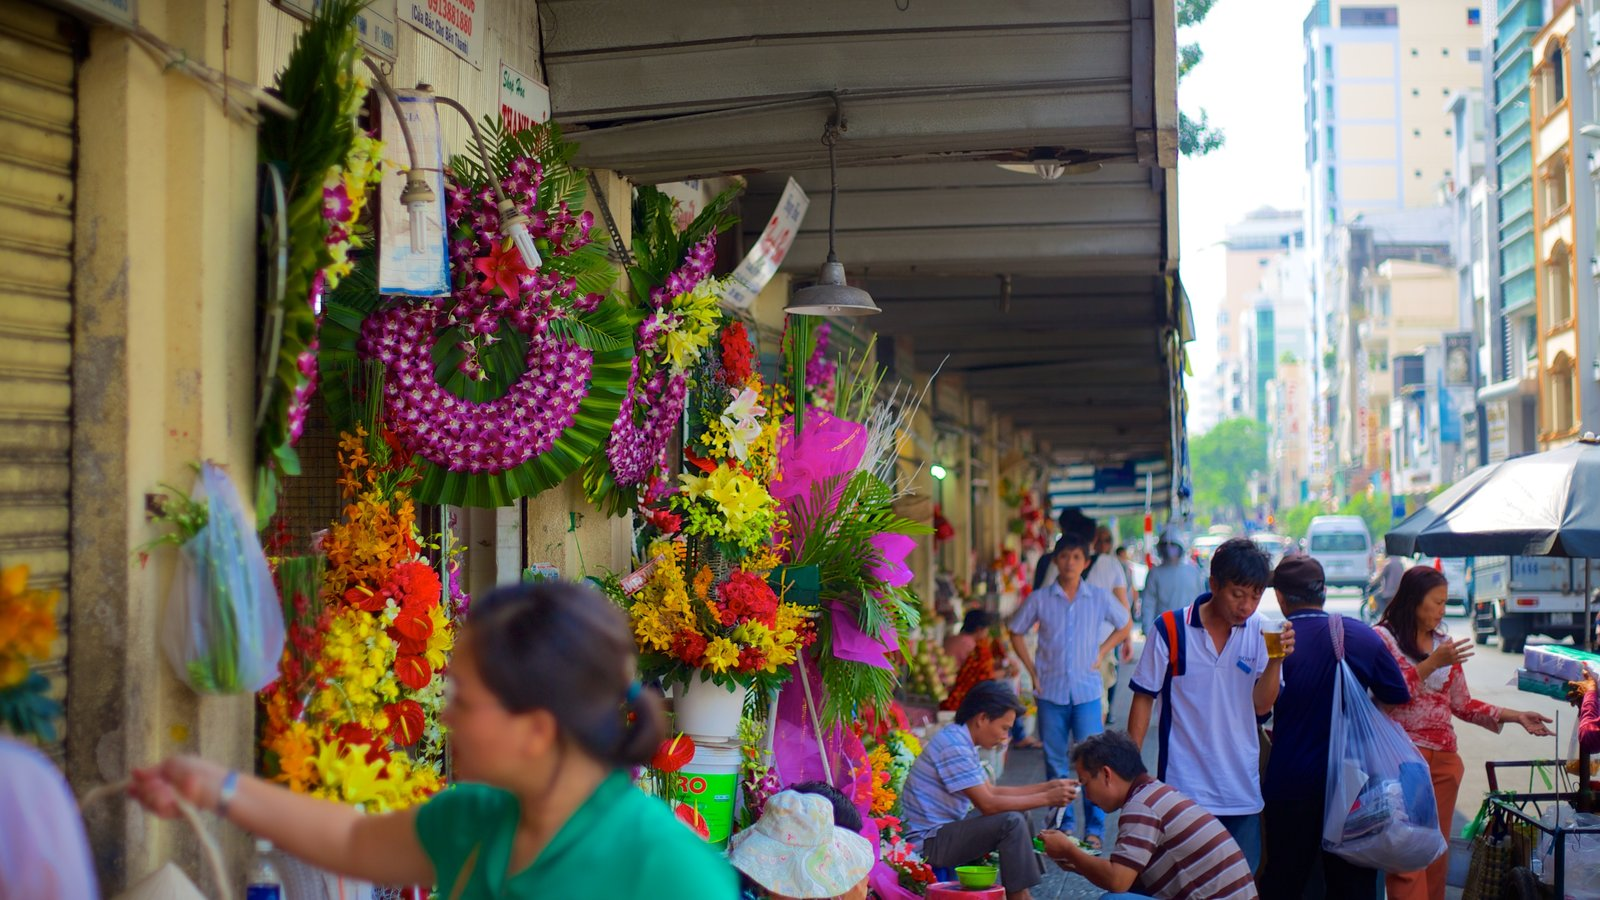 Ben Thanh Market showing a city, flowers and markets